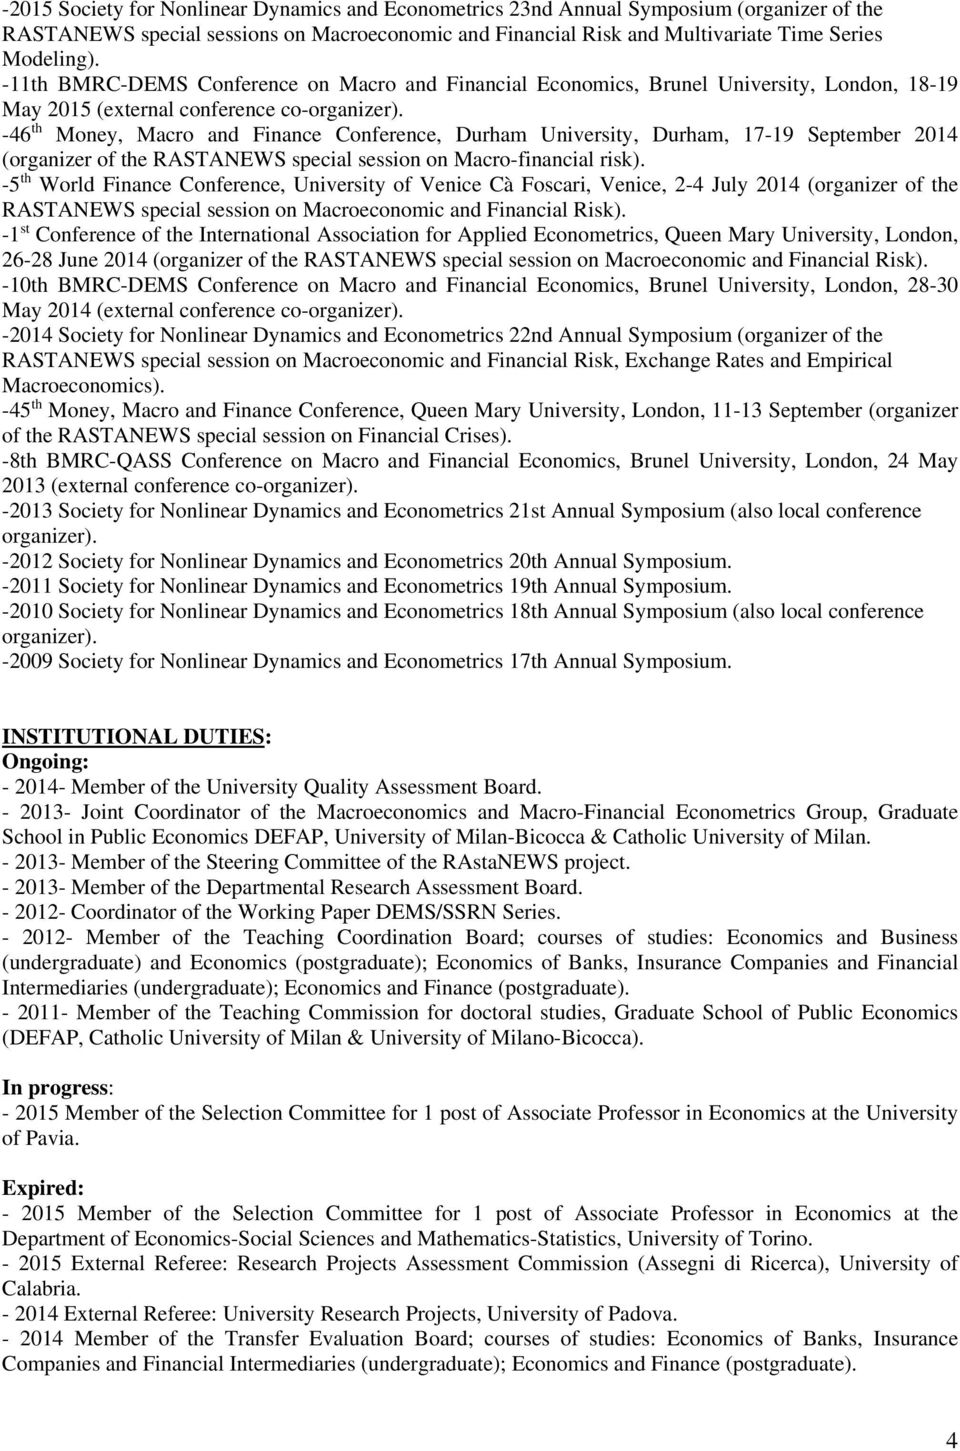 -46 th Money, Macro and Finance Conference, Durham University, Durham, 17-19 September 2014 (organizer of the RASTANEWS special session on Macro-financial risk).